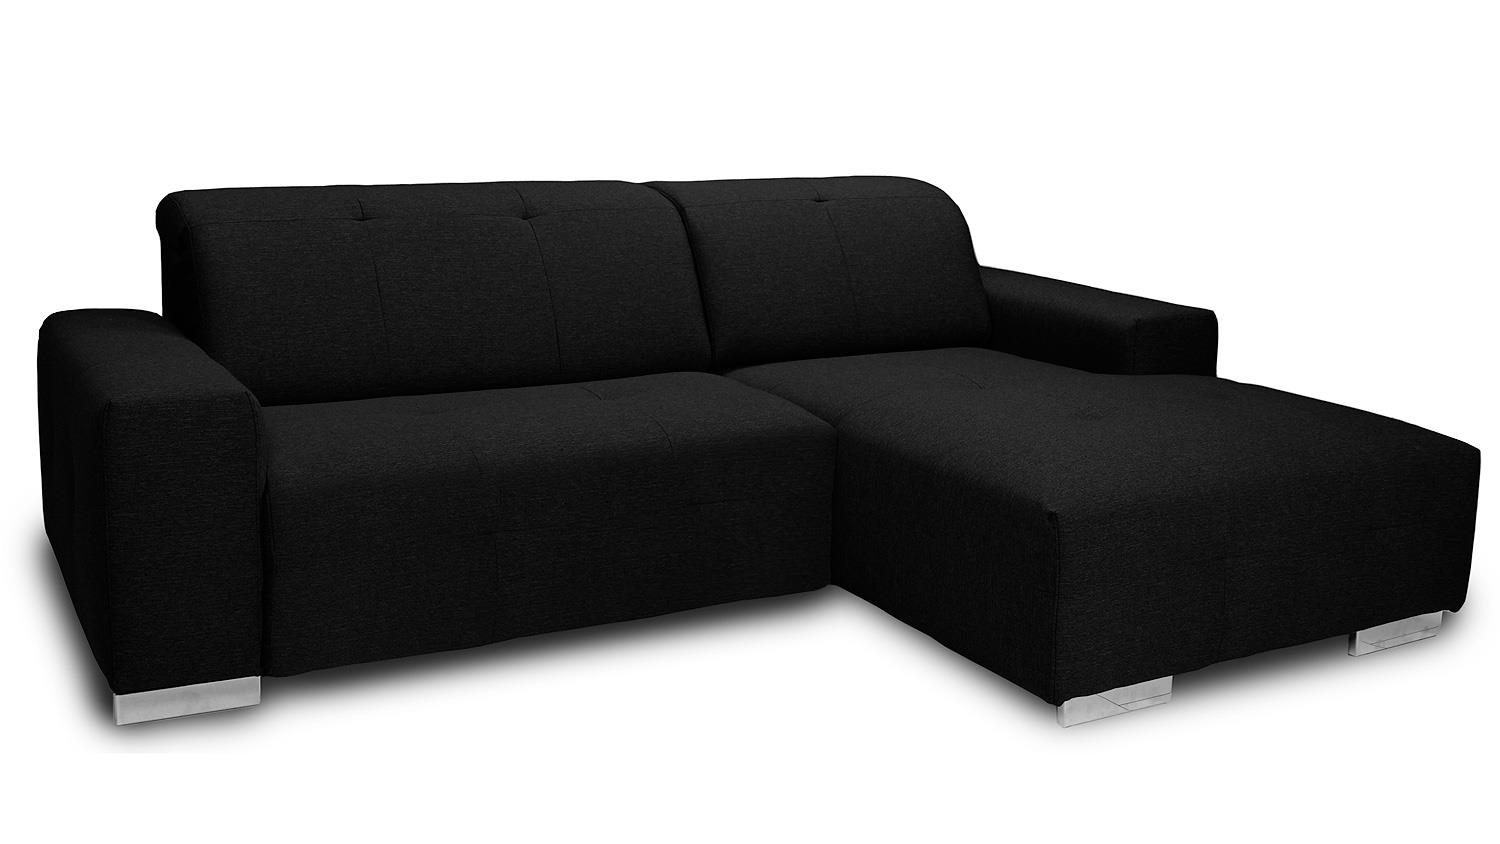 ecksofa francisco sofa schwarz elektrischer relaxfunktion. Black Bedroom Furniture Sets. Home Design Ideas